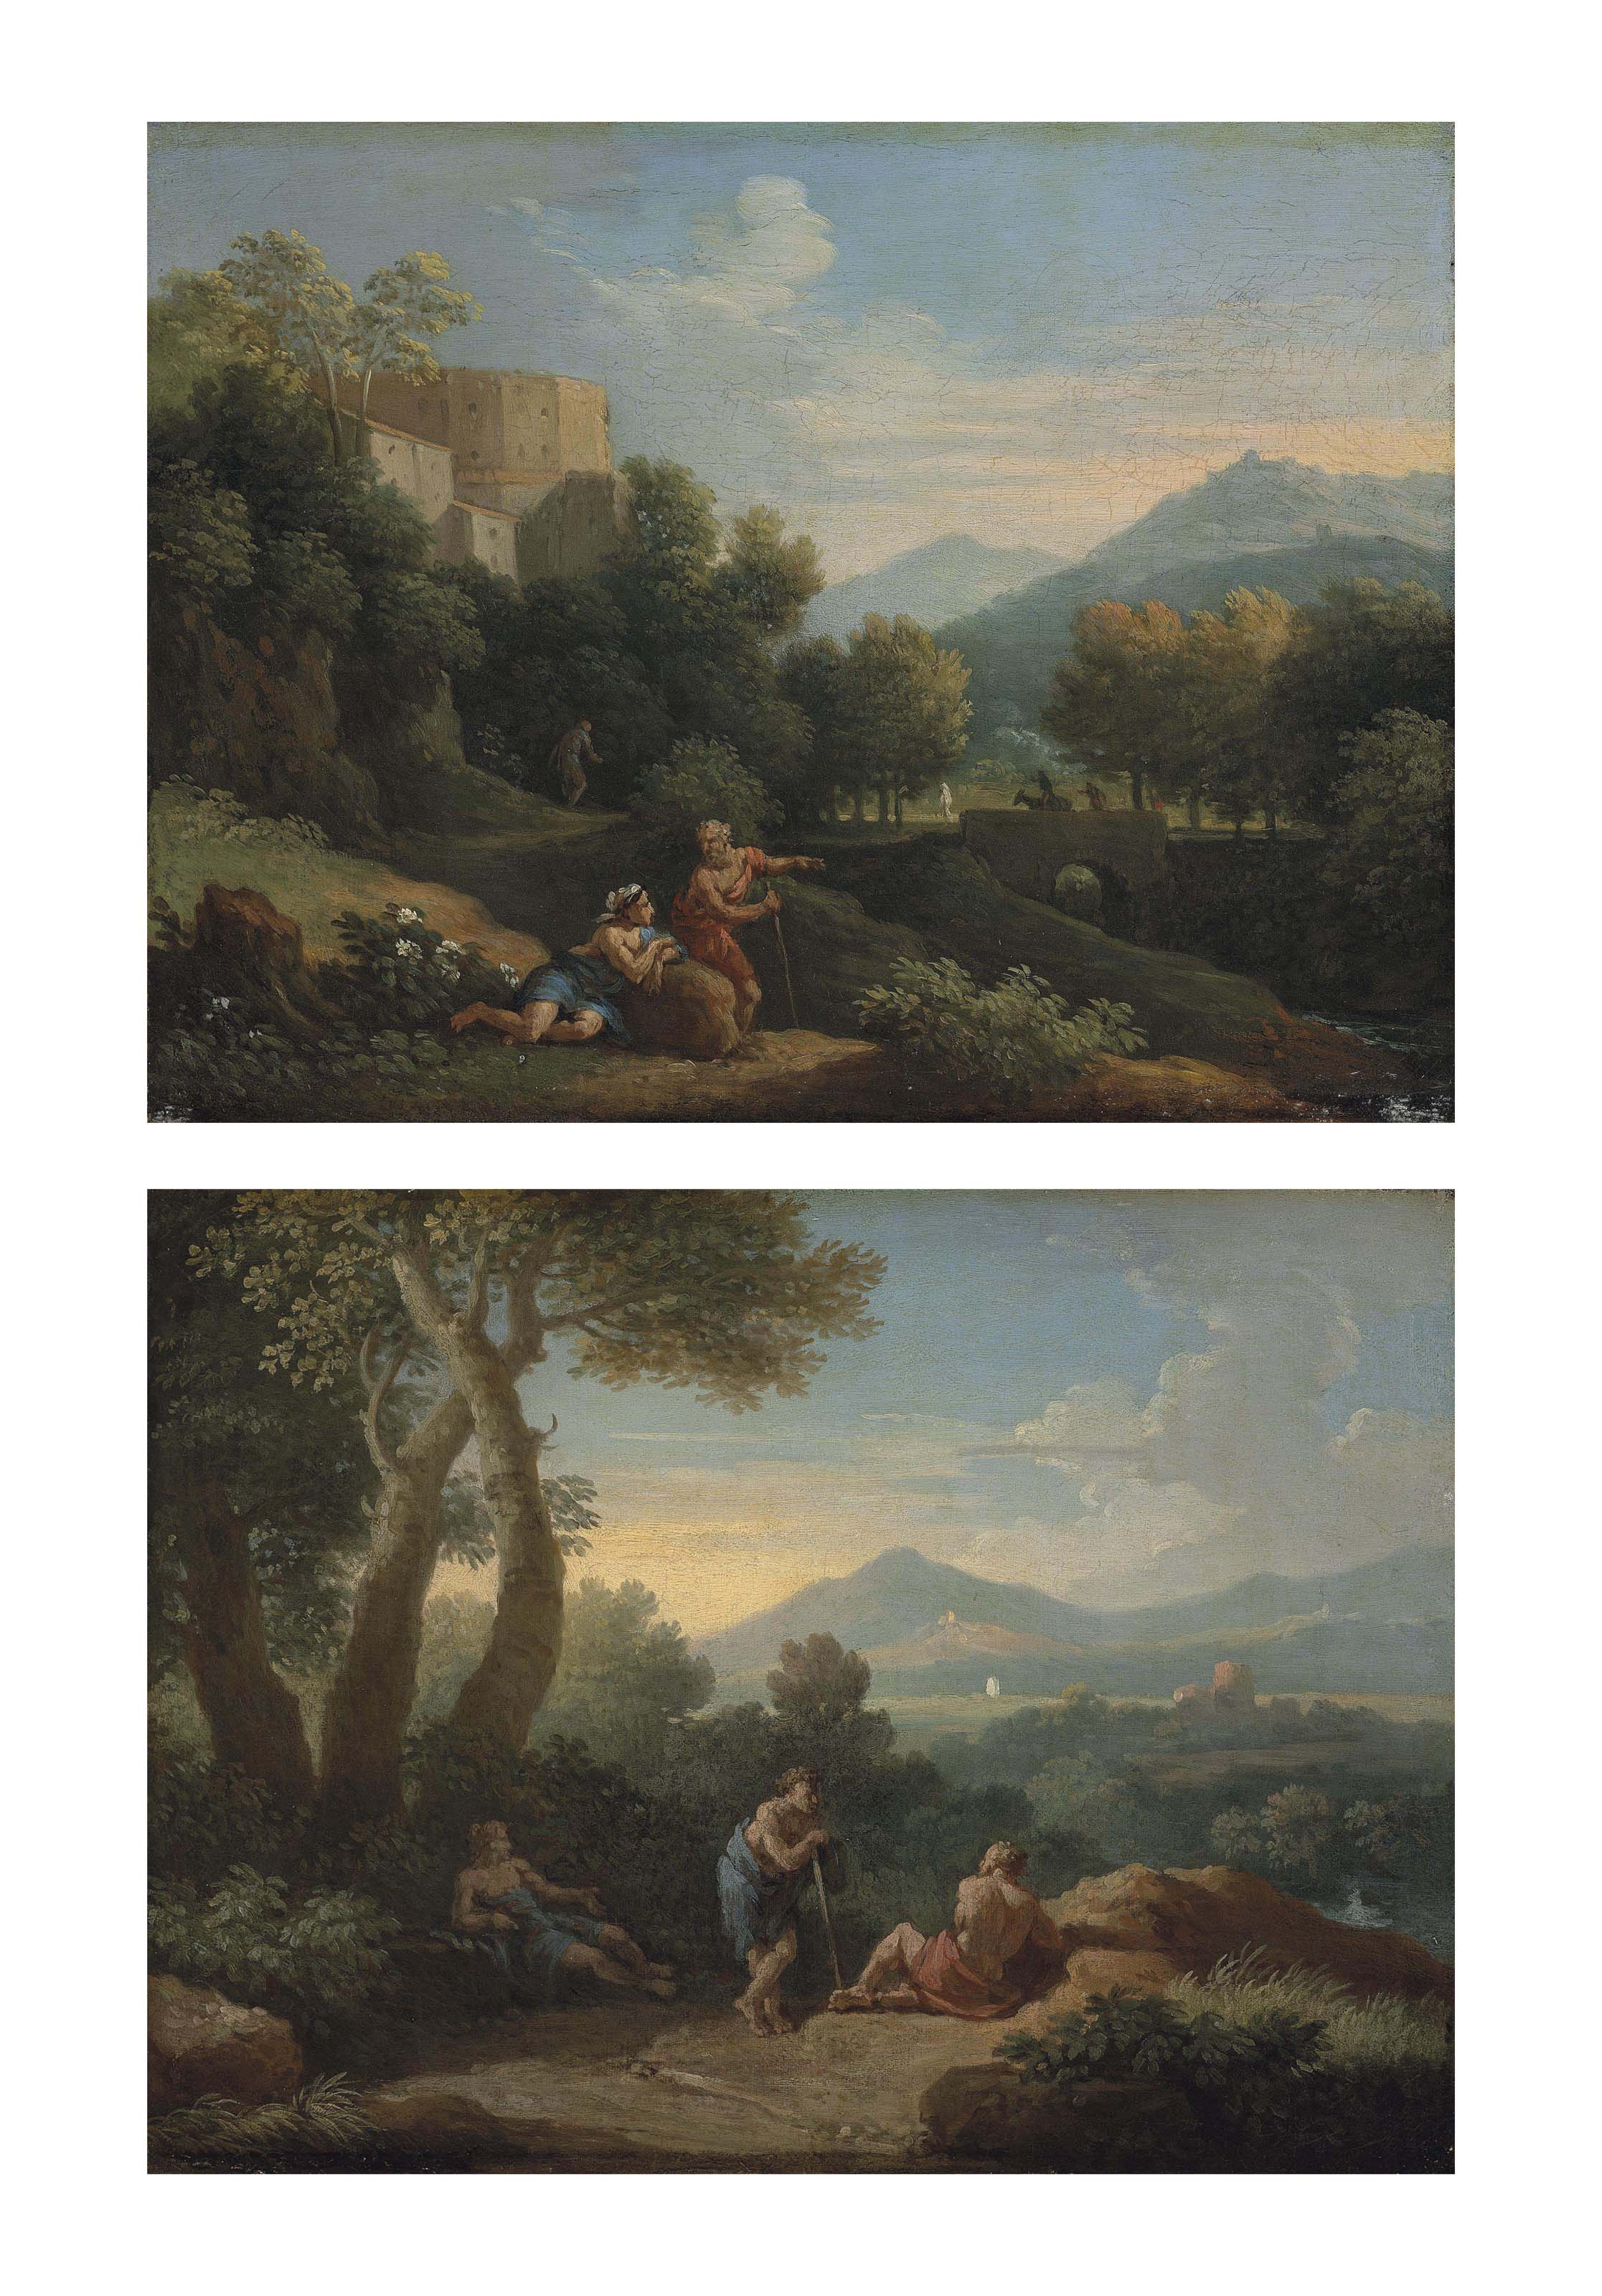 A mountainous Italianate landscape with Arcadian figures conversing on a path, a fortified town beyond; and A wooded Italianate landscape with Arcadian figures conversing on a path